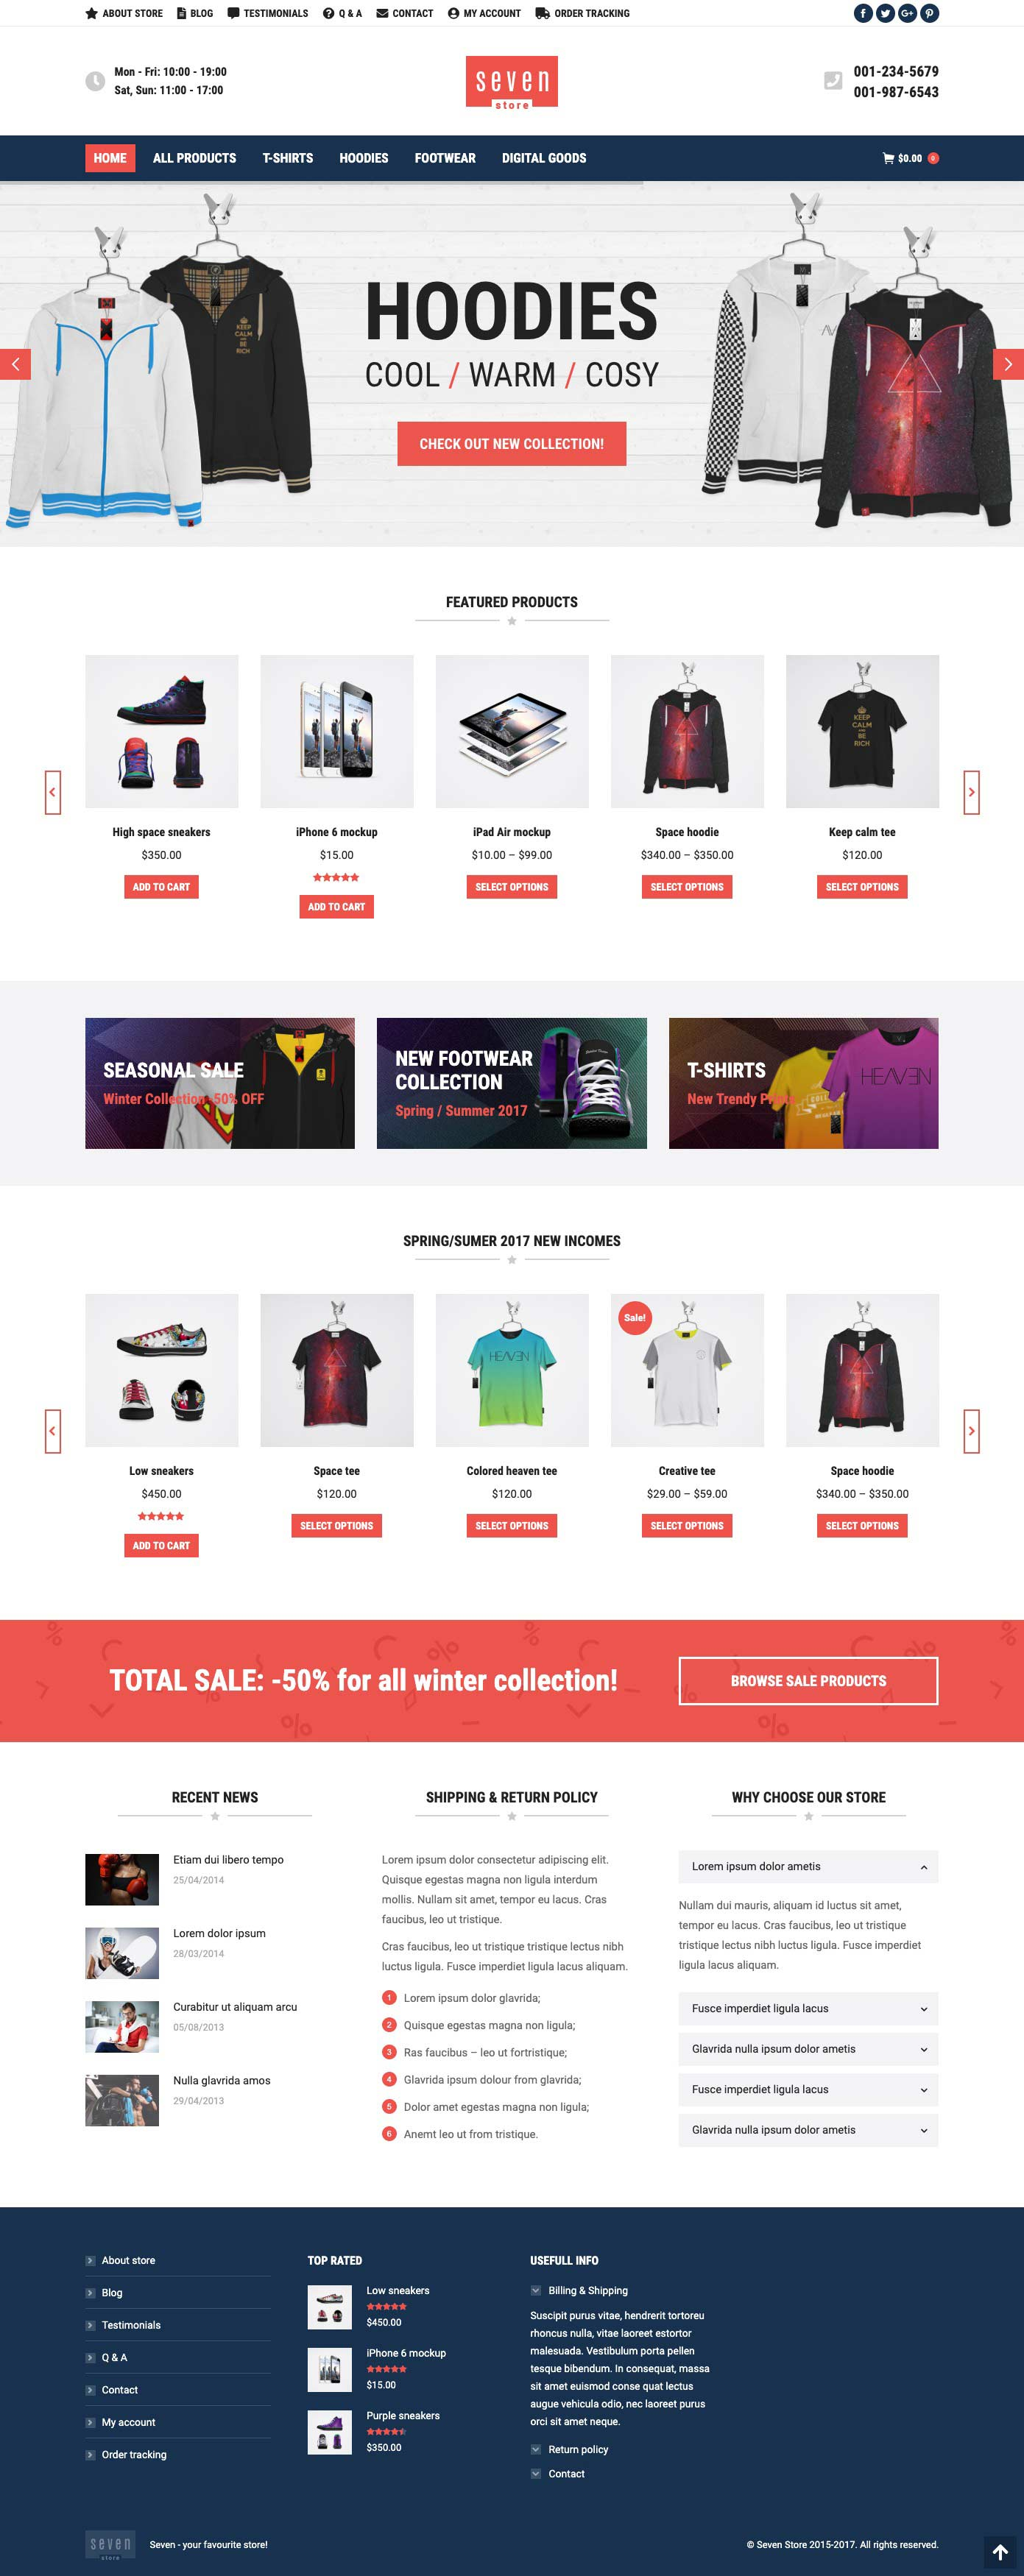 ecommerce business web design sample